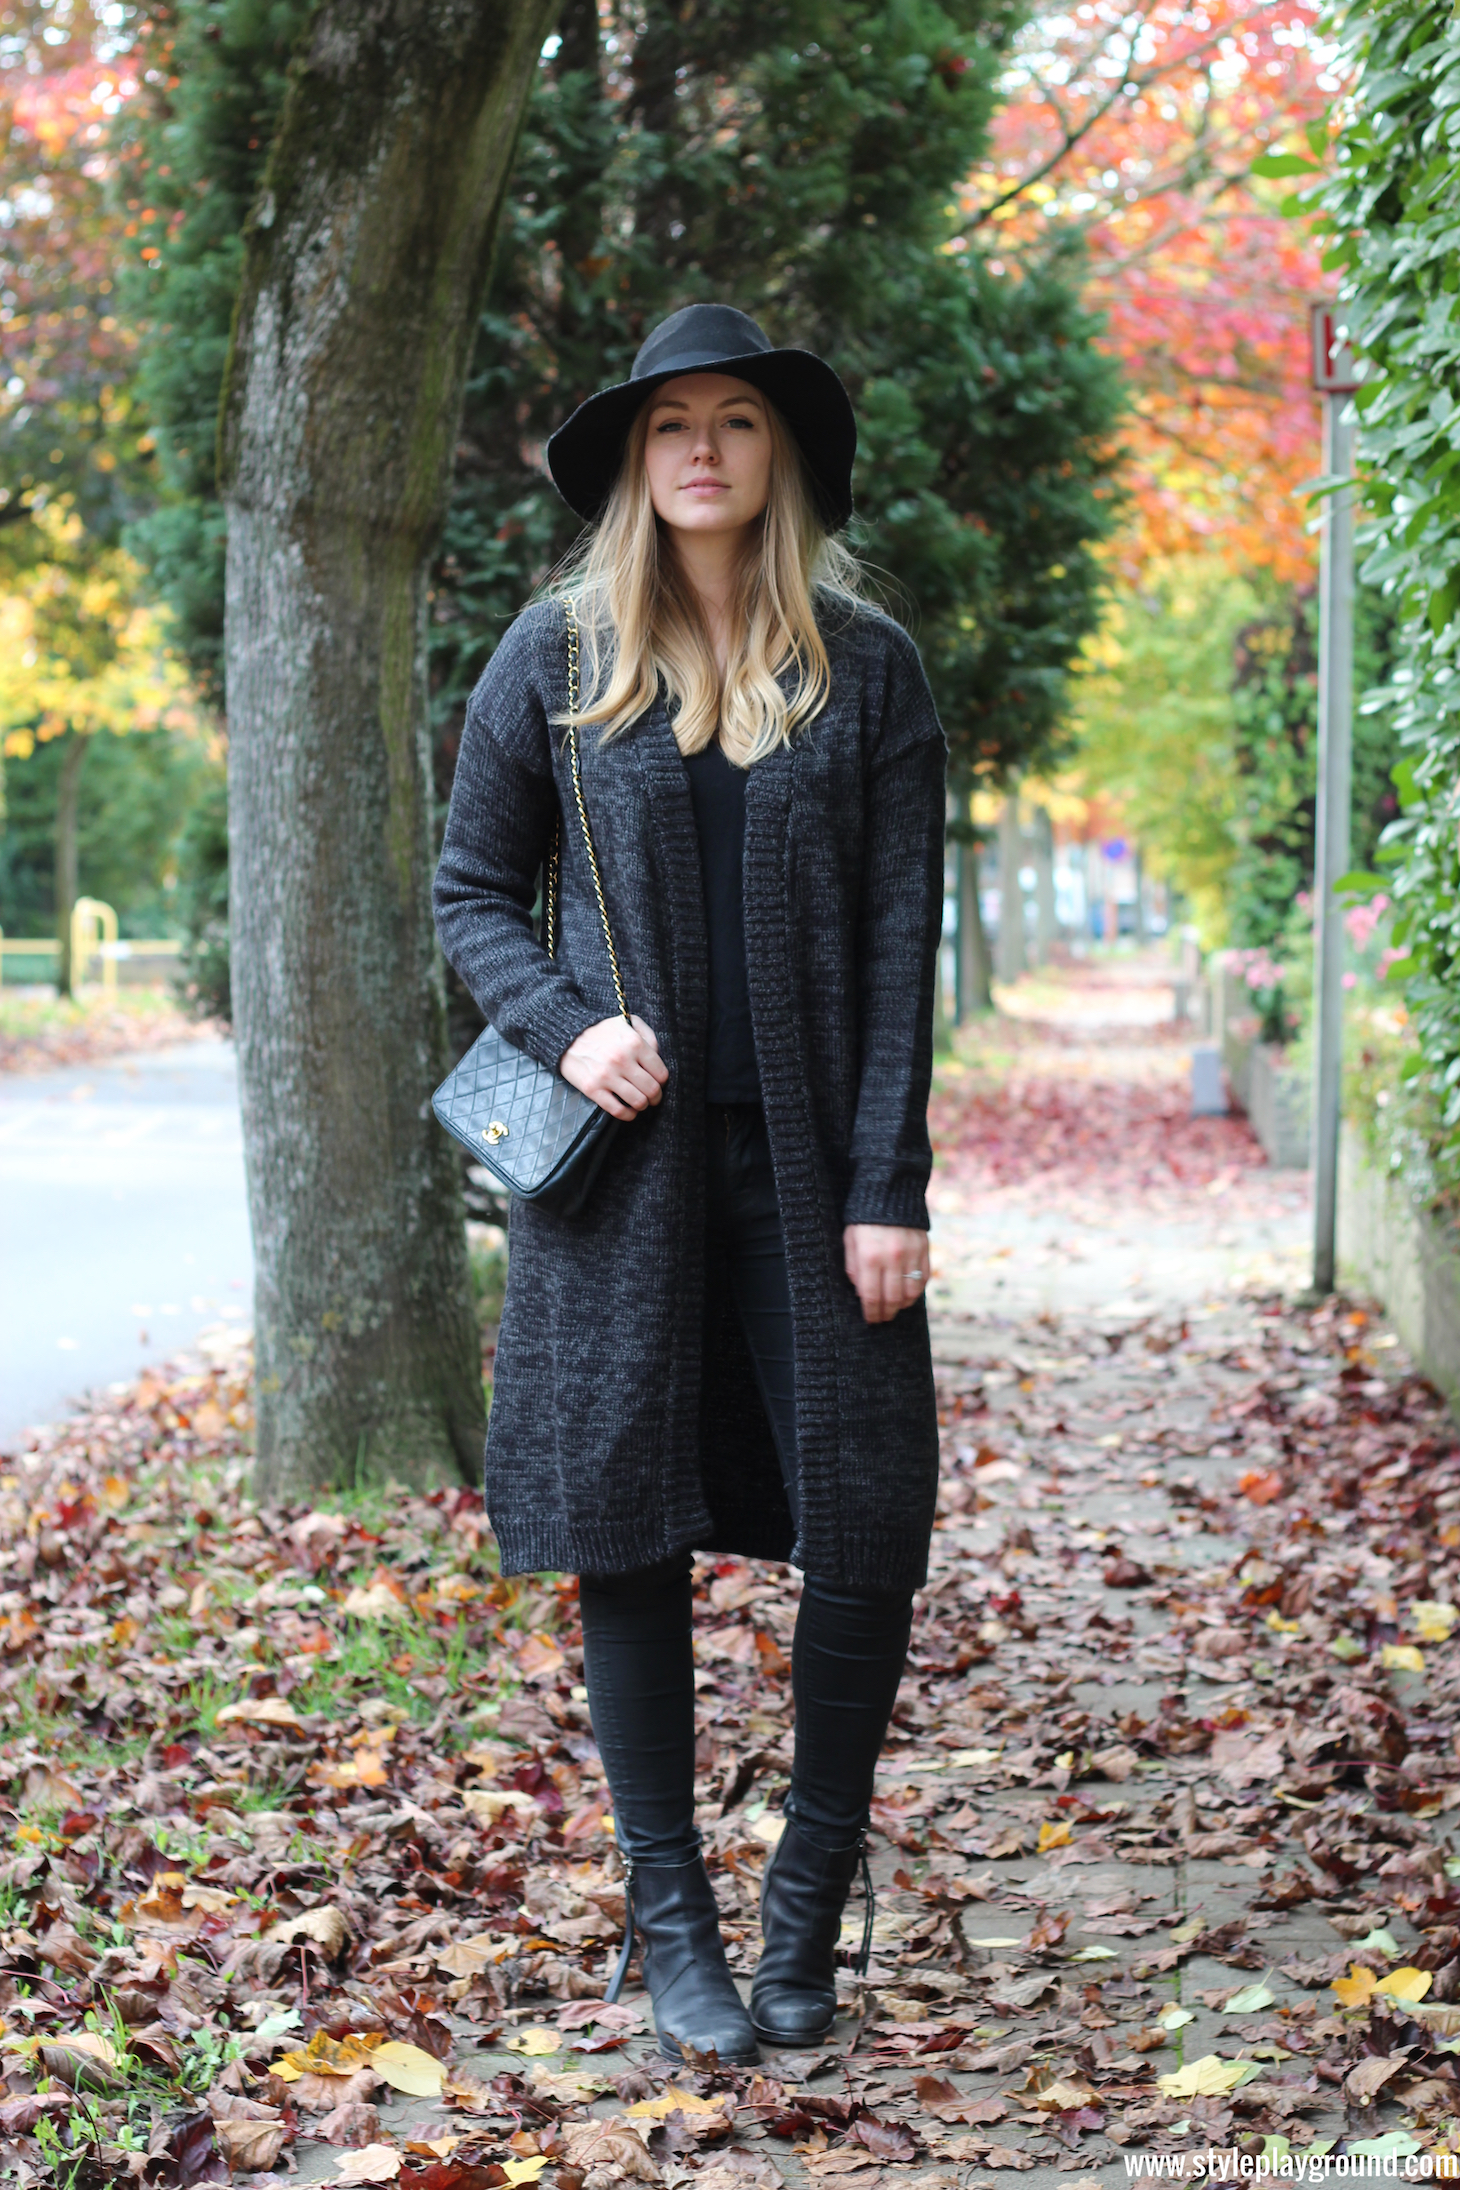 Wearable stories cardigan • Zara top & jeans • Vintage Chanel bag • Acne pistol boots • H&M hat via Style playground